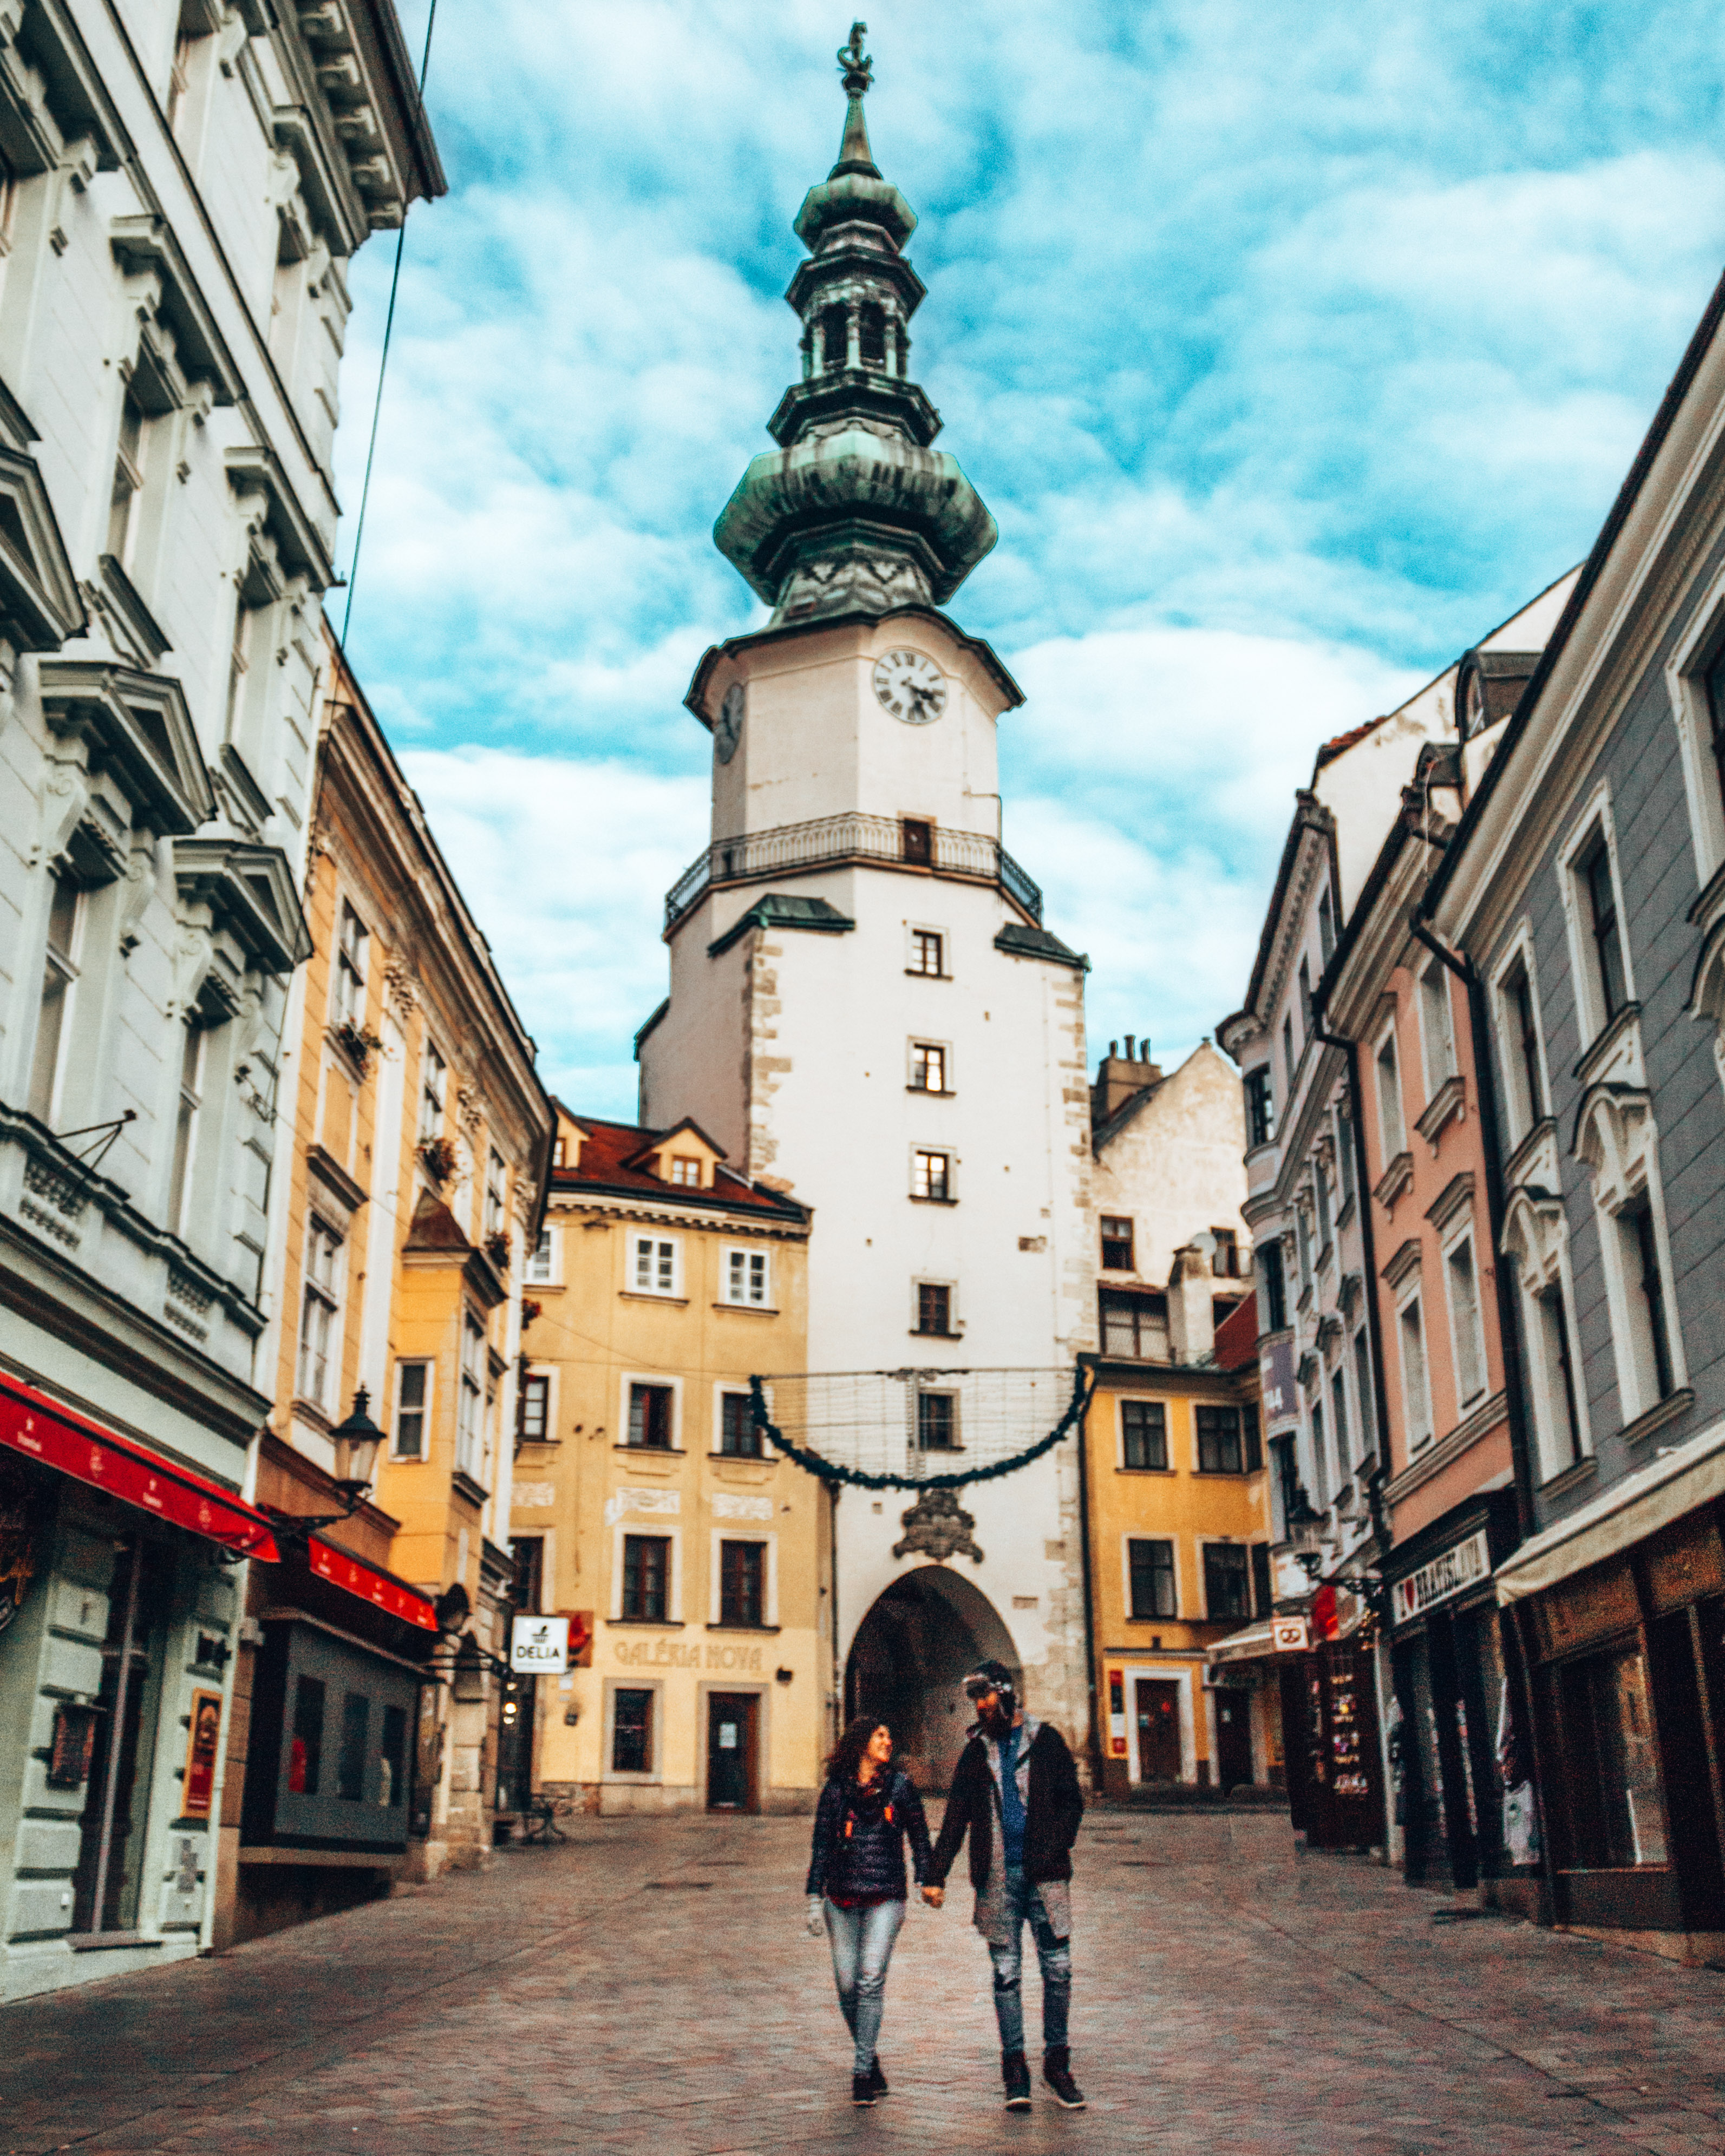 Walking through the streets of Bratislava